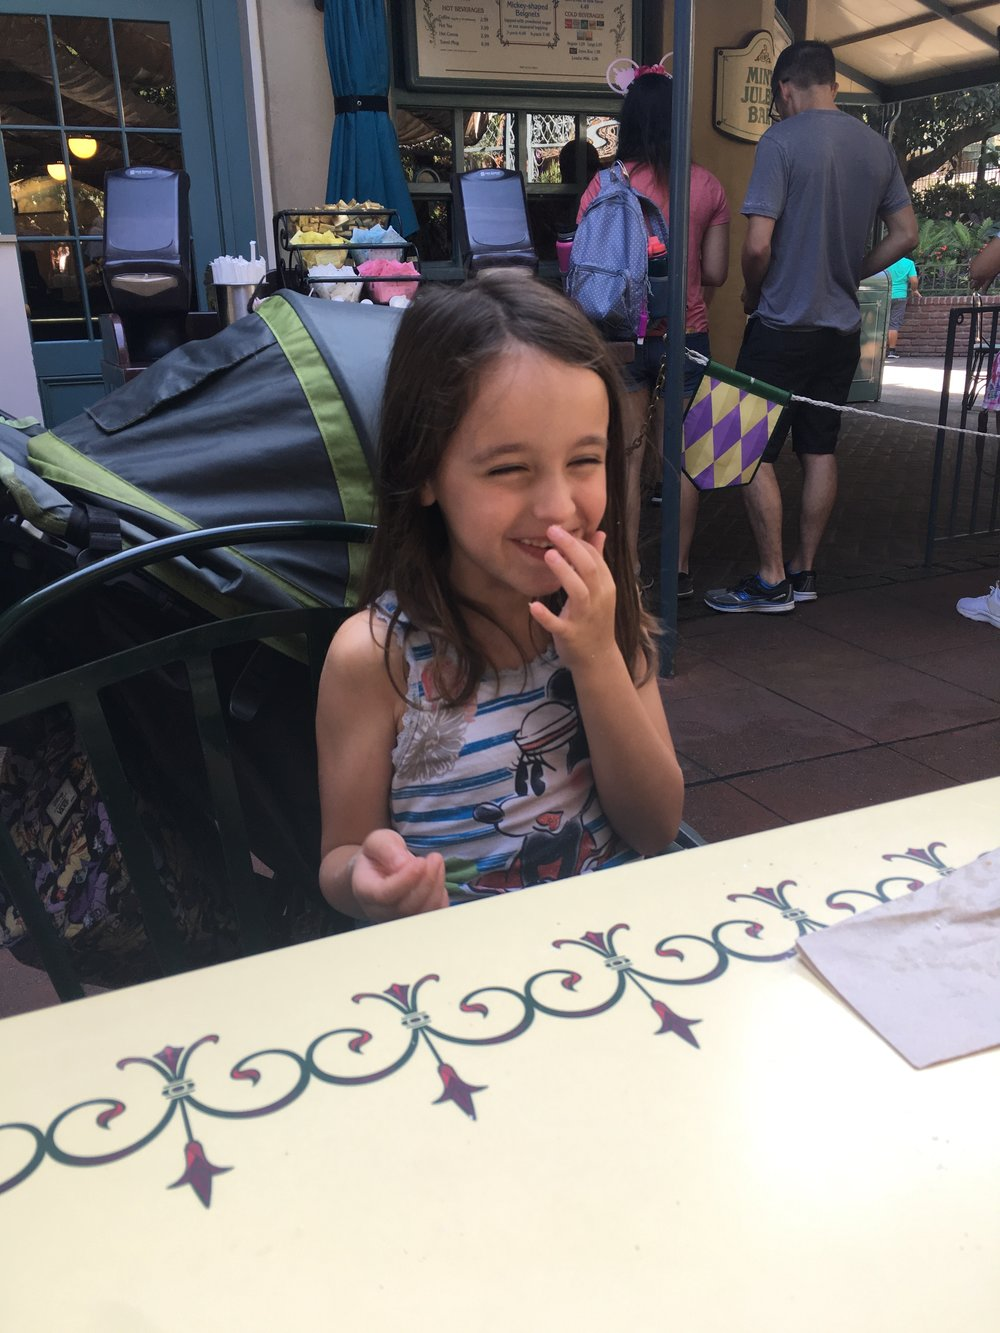 eating beignets and sipping Mint Juleps in New Orleans Square